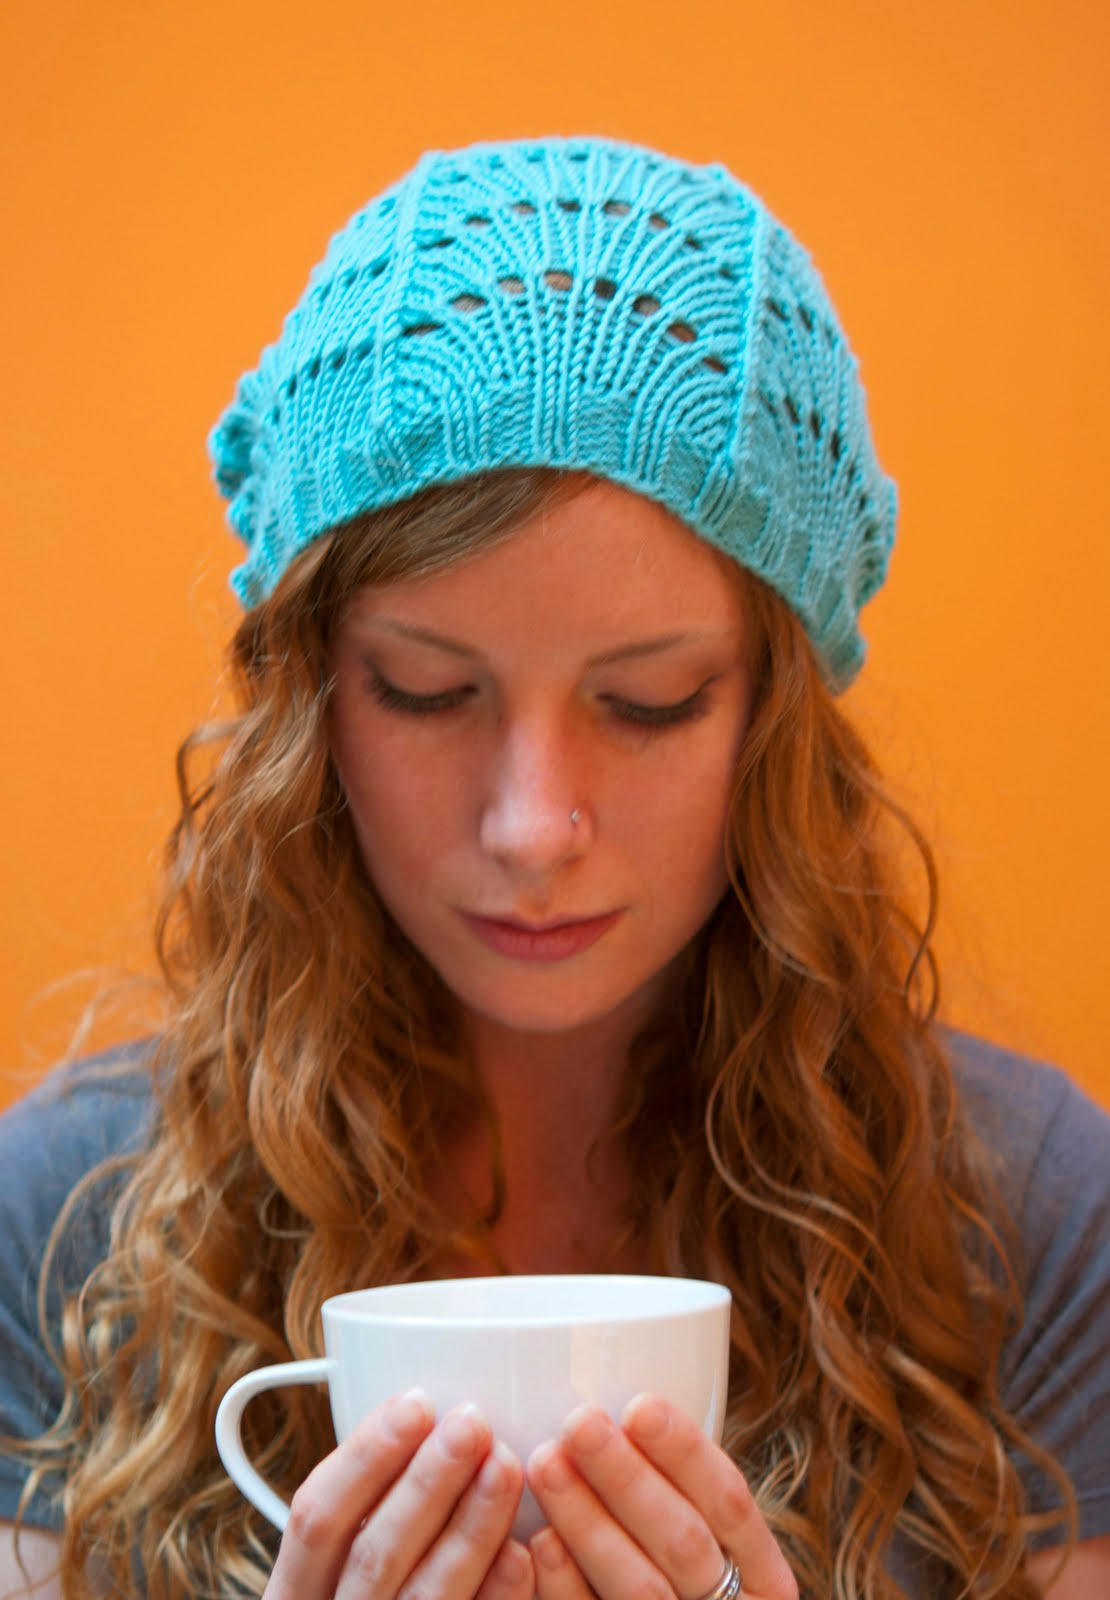 Free Knitting Patterns For Lace Hats : Ruby Submarine: Free Scallop Lace Hat Pattern!